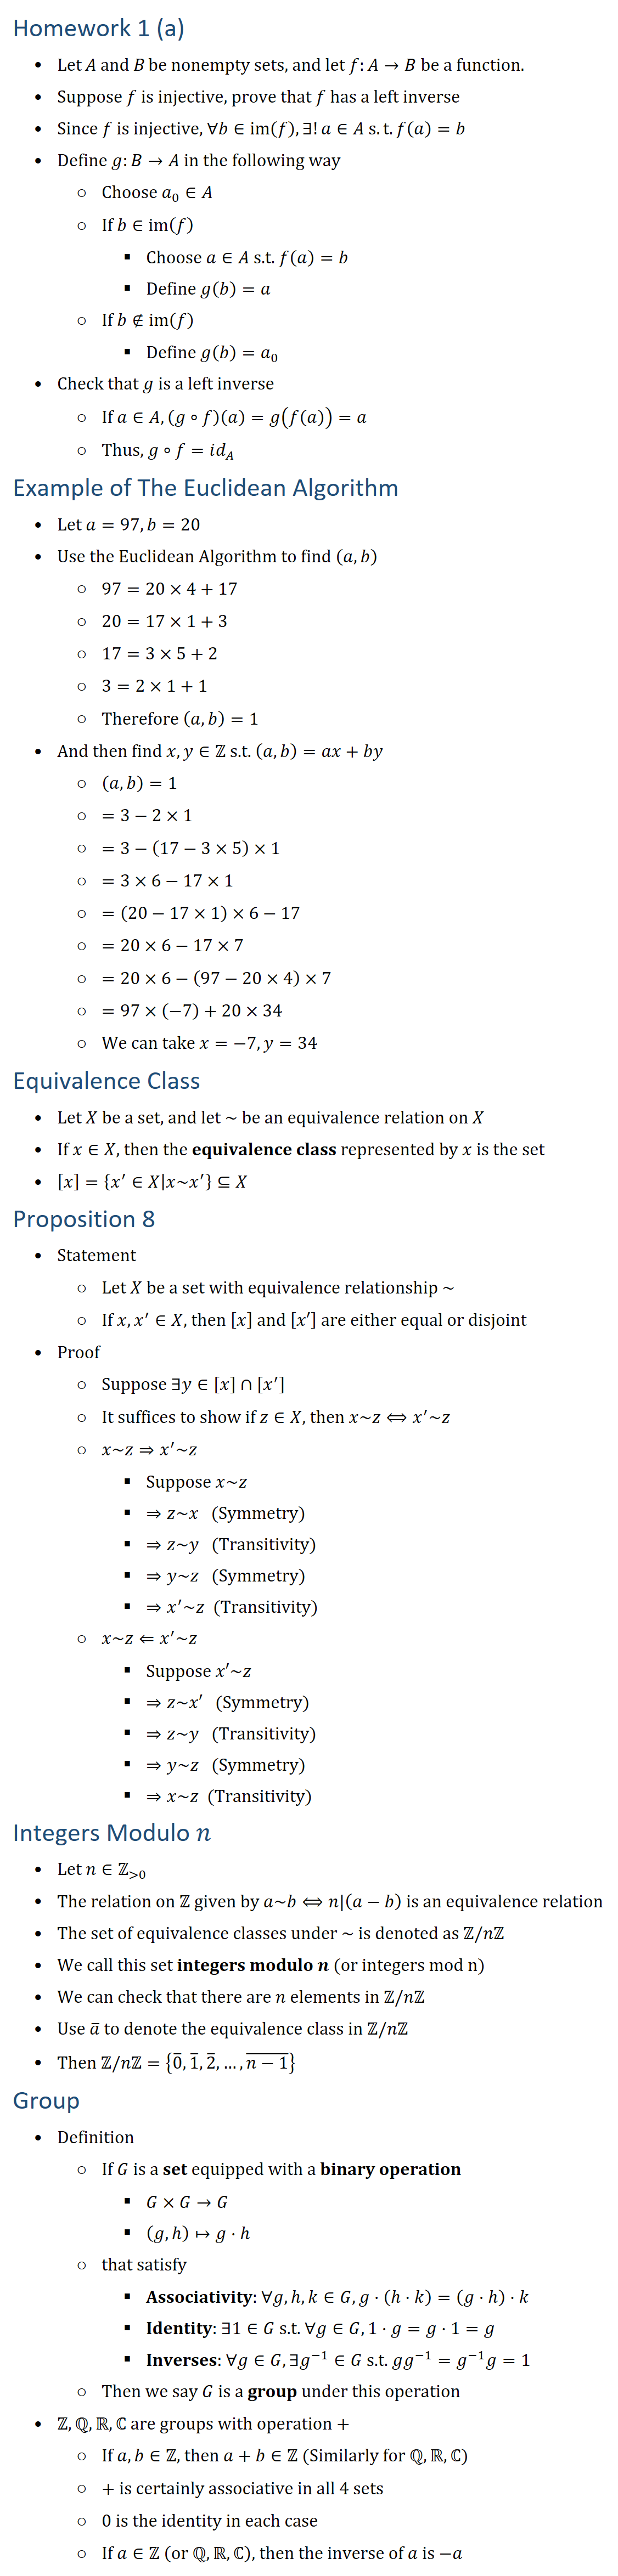 example of a non-injective function